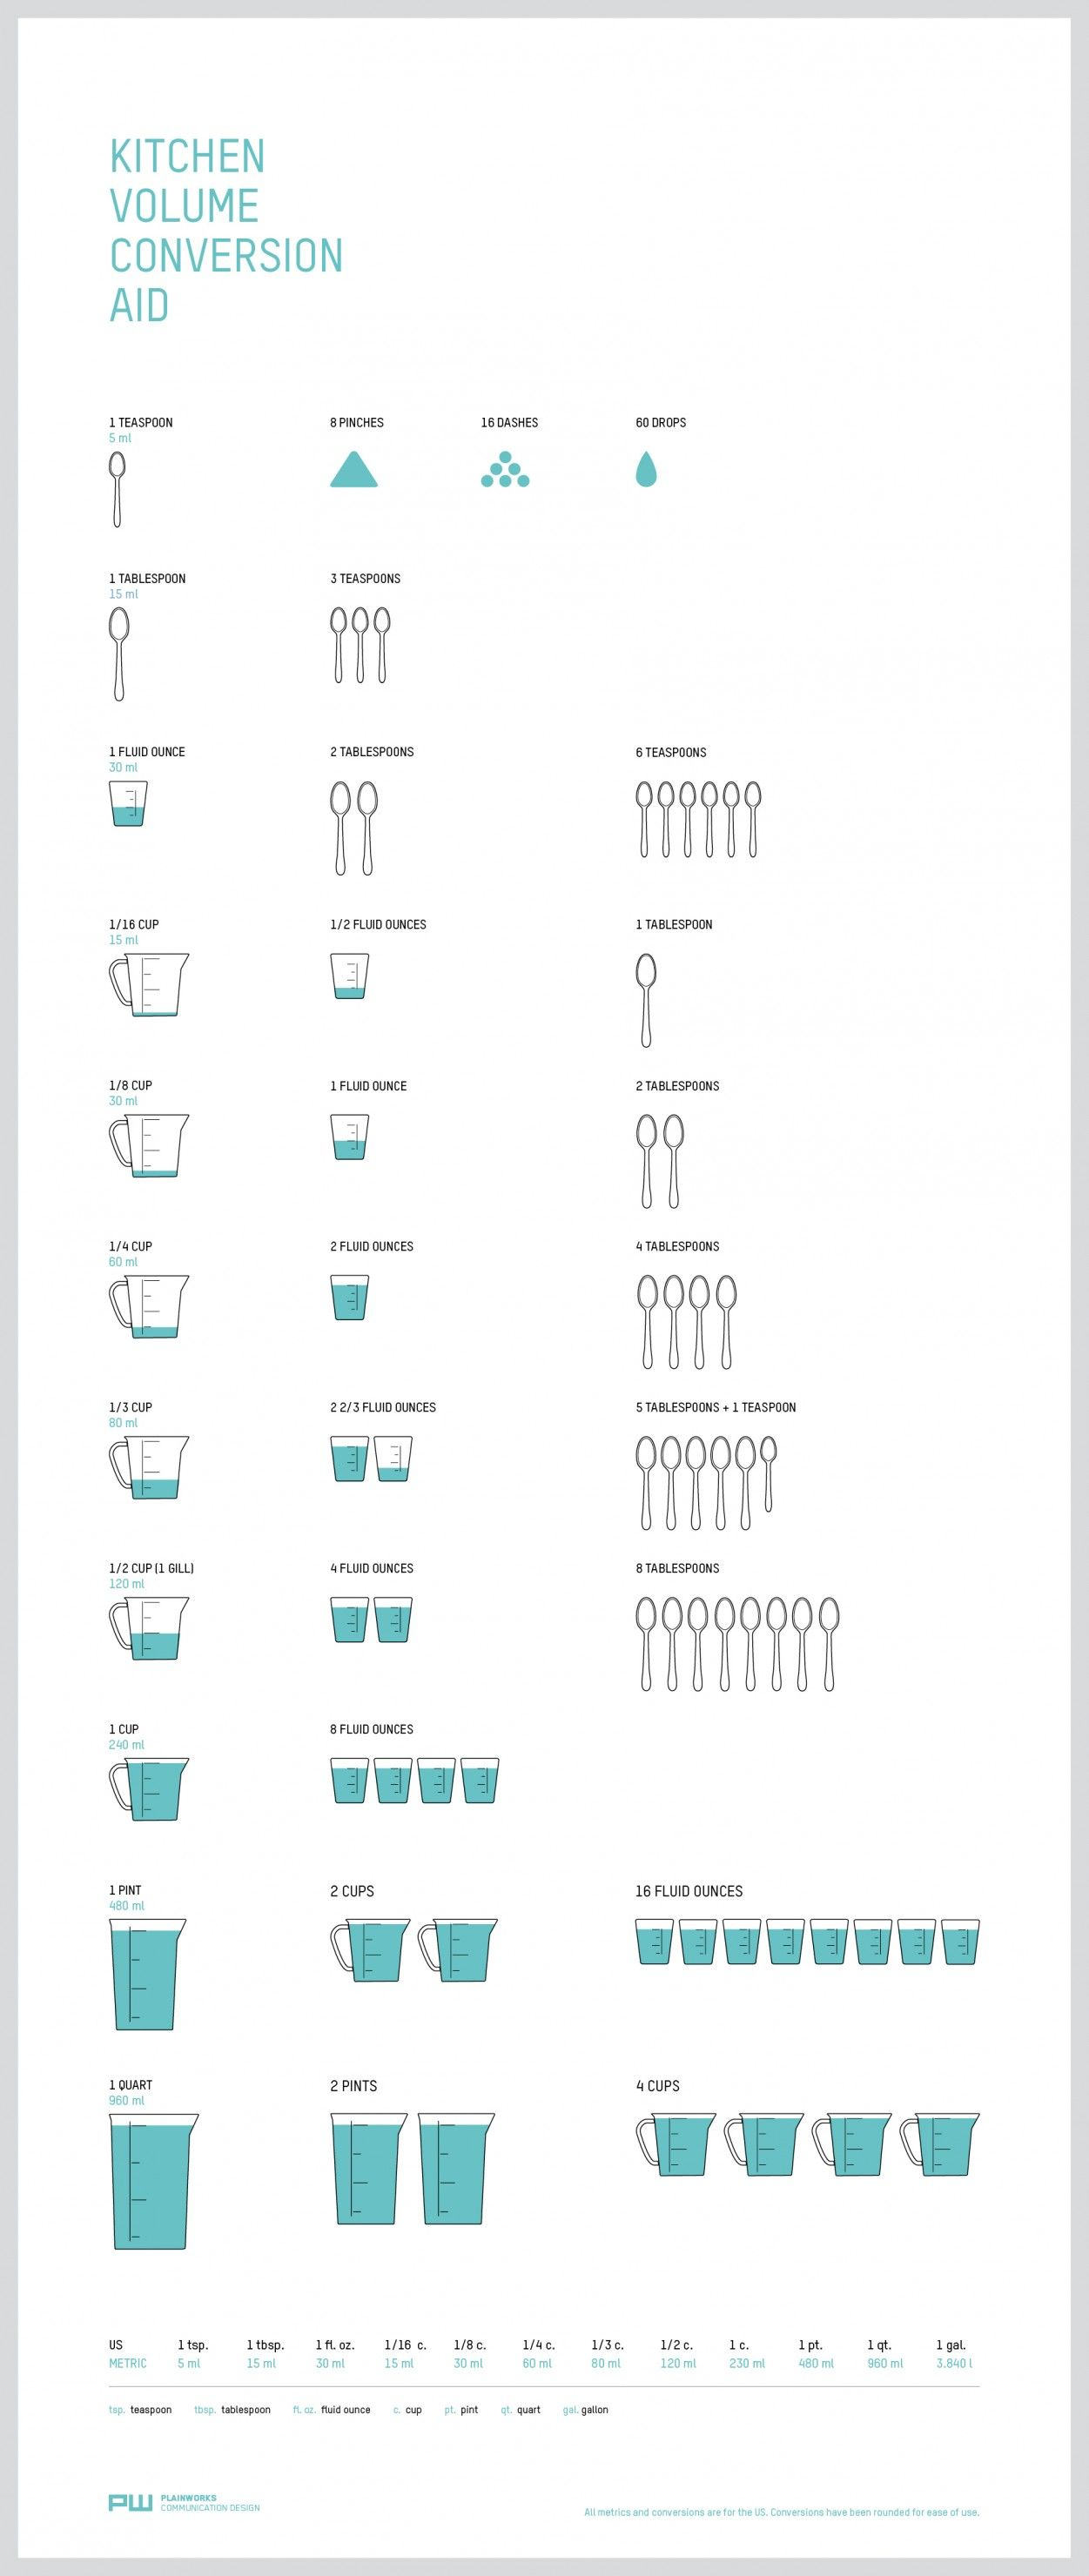 6 Charts To Make Kitchen Conversions Easy Food Pinterest